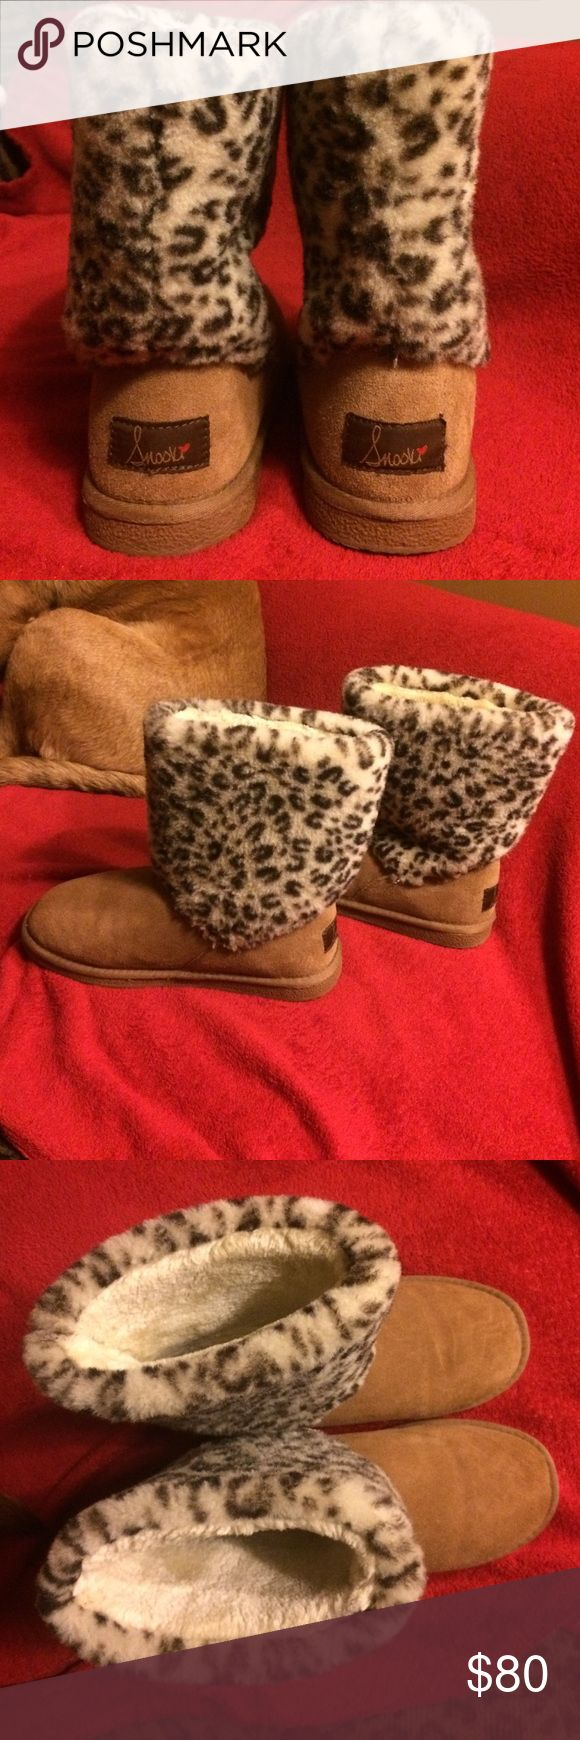 Snooki Mid Calf Suede Boots Fur lined, barely worn tan/leopard Snooki Boots Size 9 Snooki Shoes Winter & Rain Boots